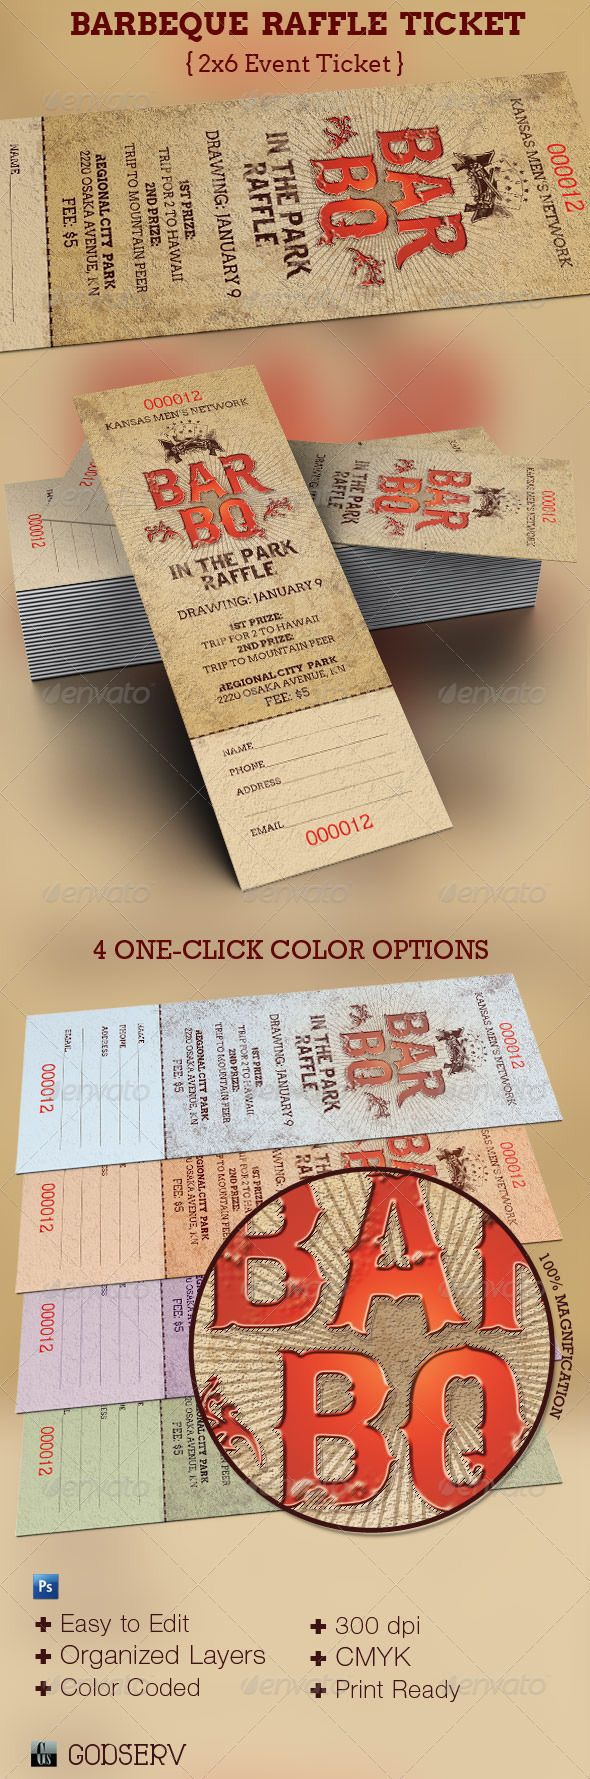 bbq tickets template - barbeque raffle ticket template fonts flyer template